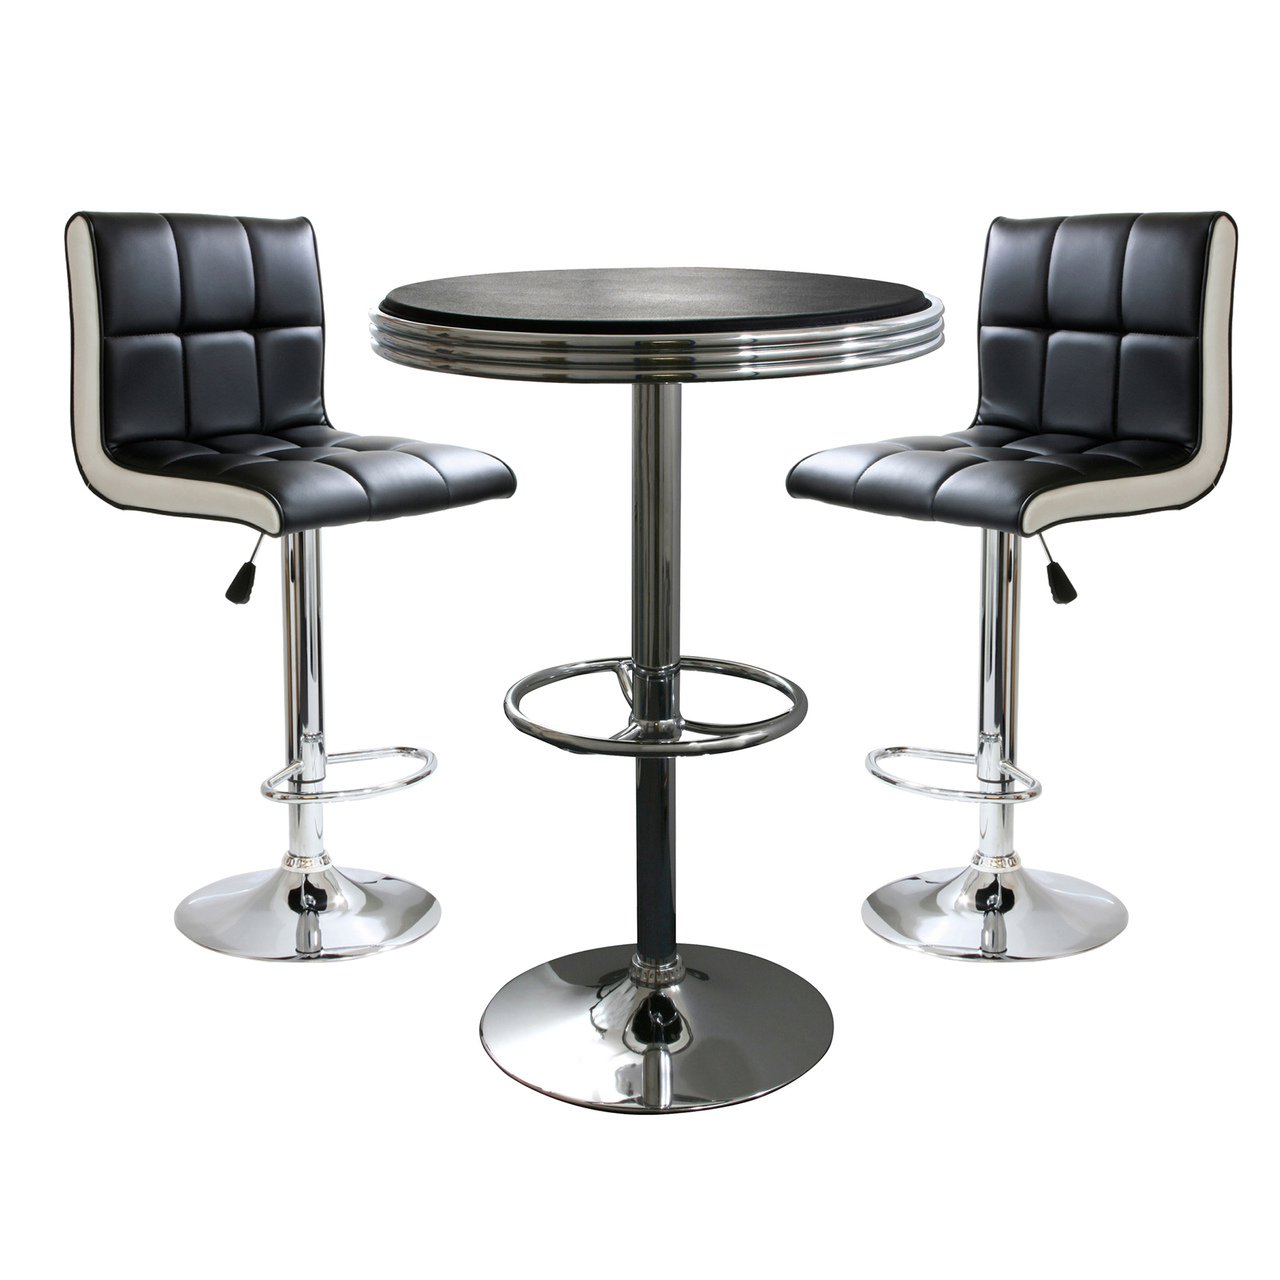 AmeriHome BSSET19 3 Piece Contemporary Two Tone Bar Set by